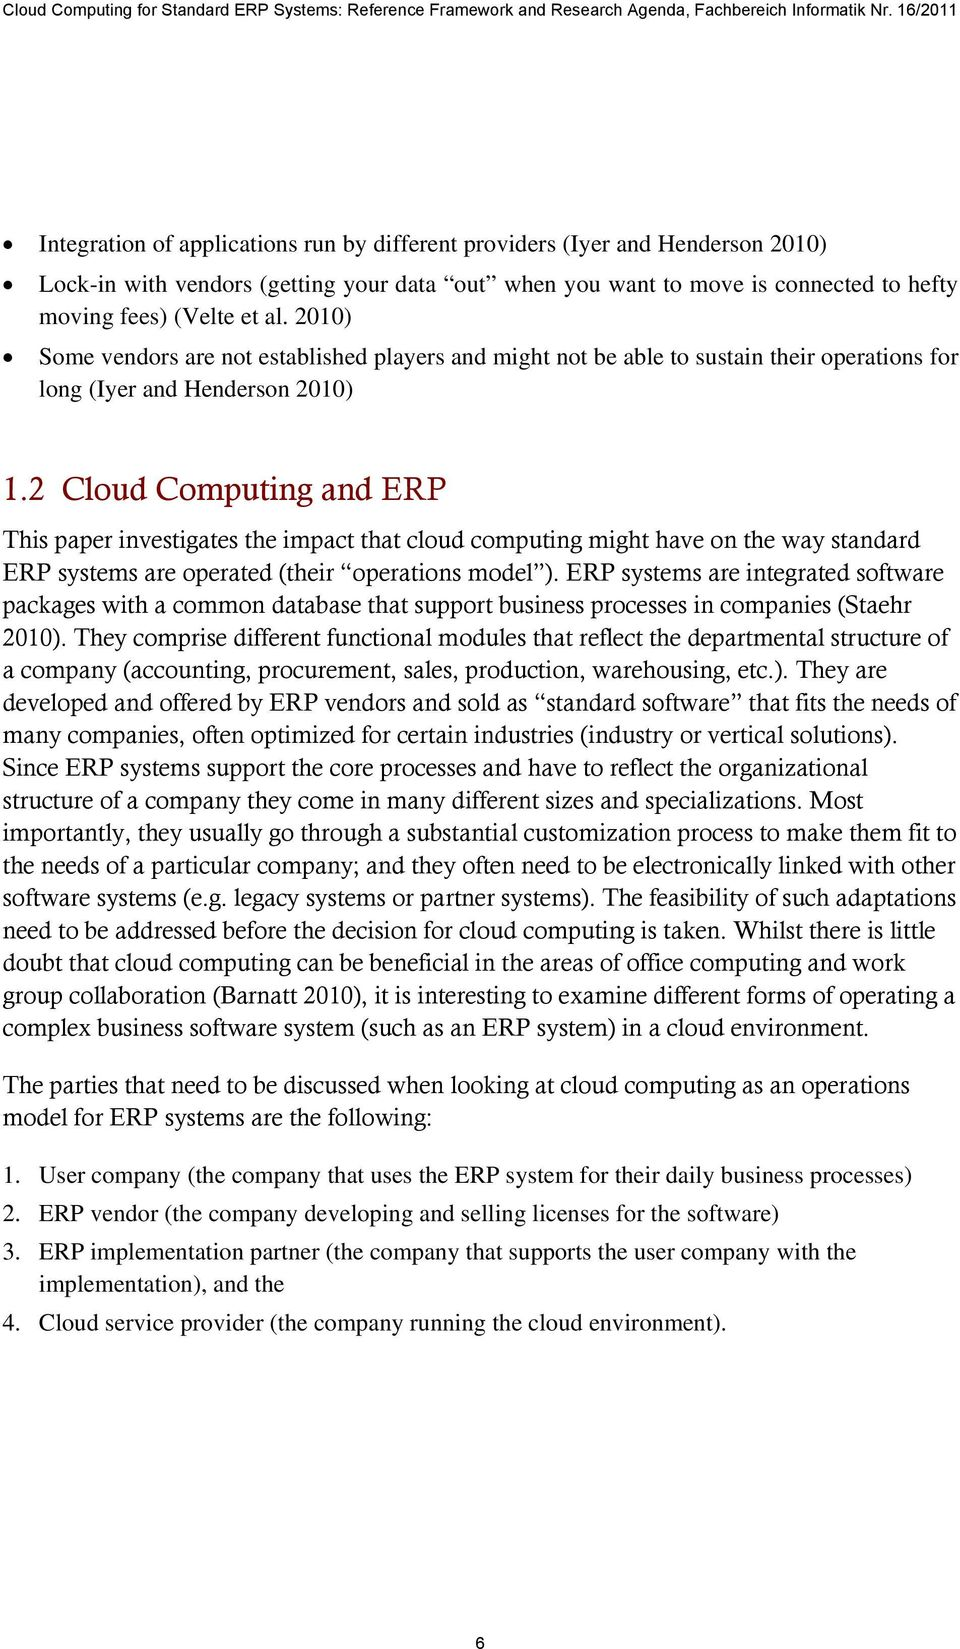 2 Cloud Computing and ERP This paper investigates the impact that cloud computing might have on the way standard ERP systems are operated (their operations model ).